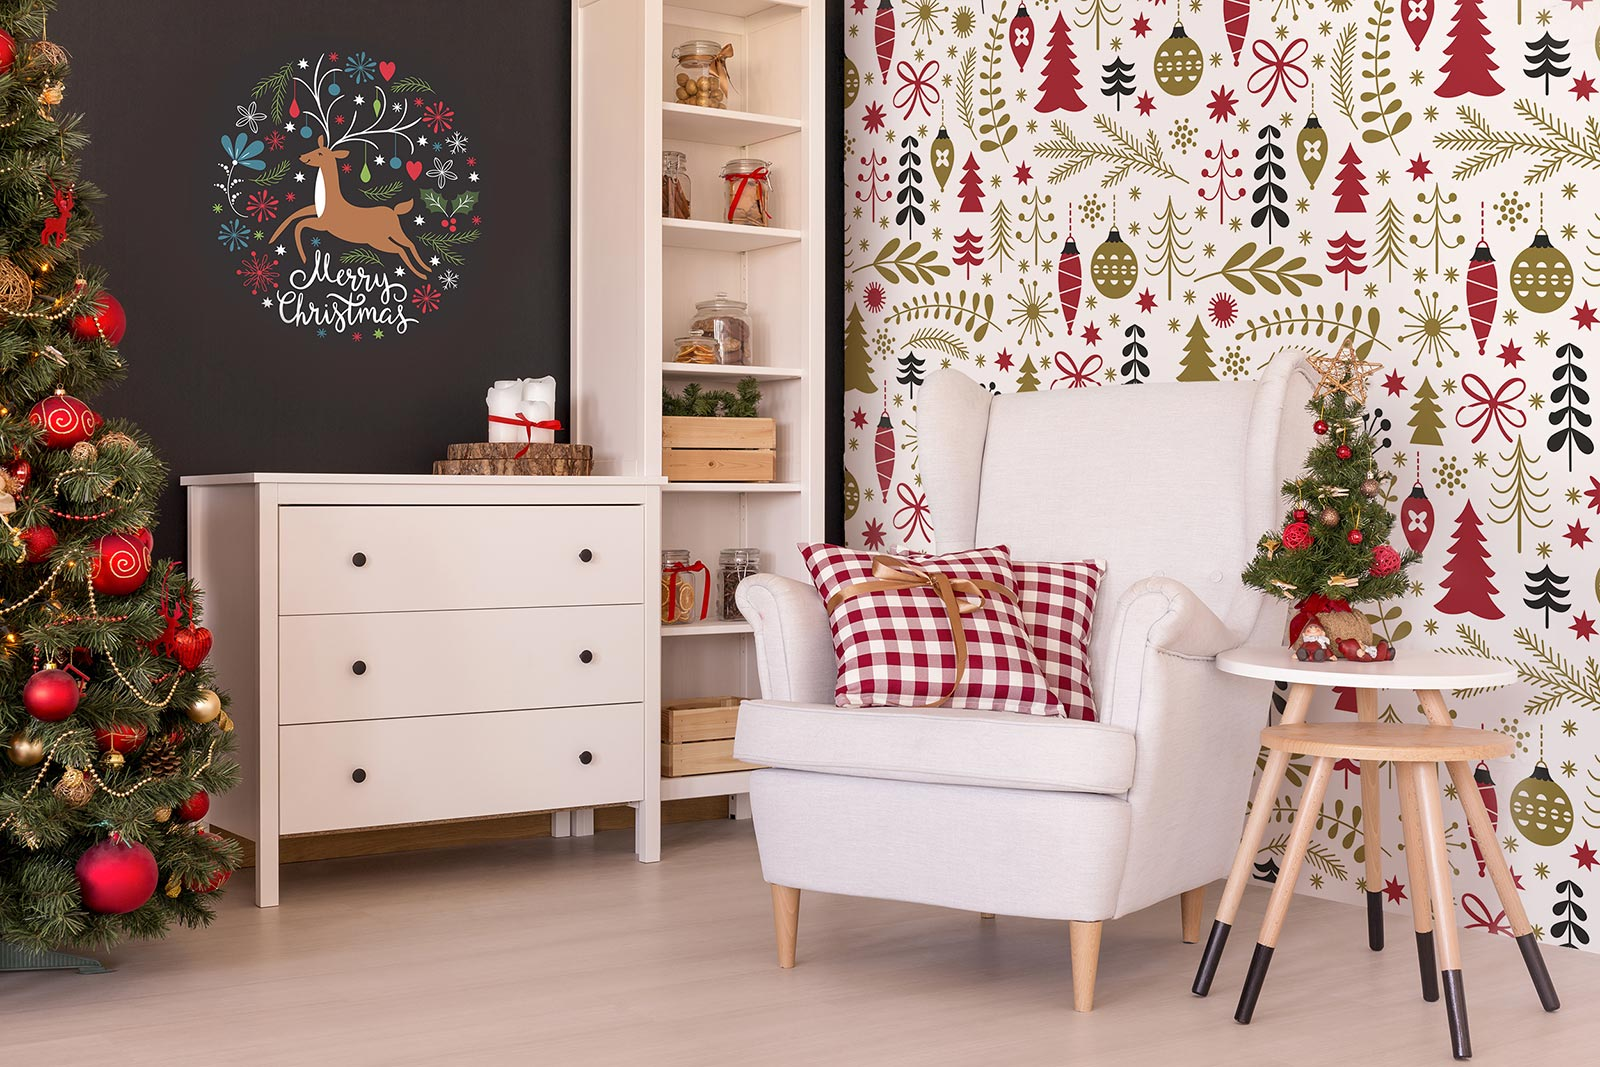 Christmas wall sticker in traditional colors